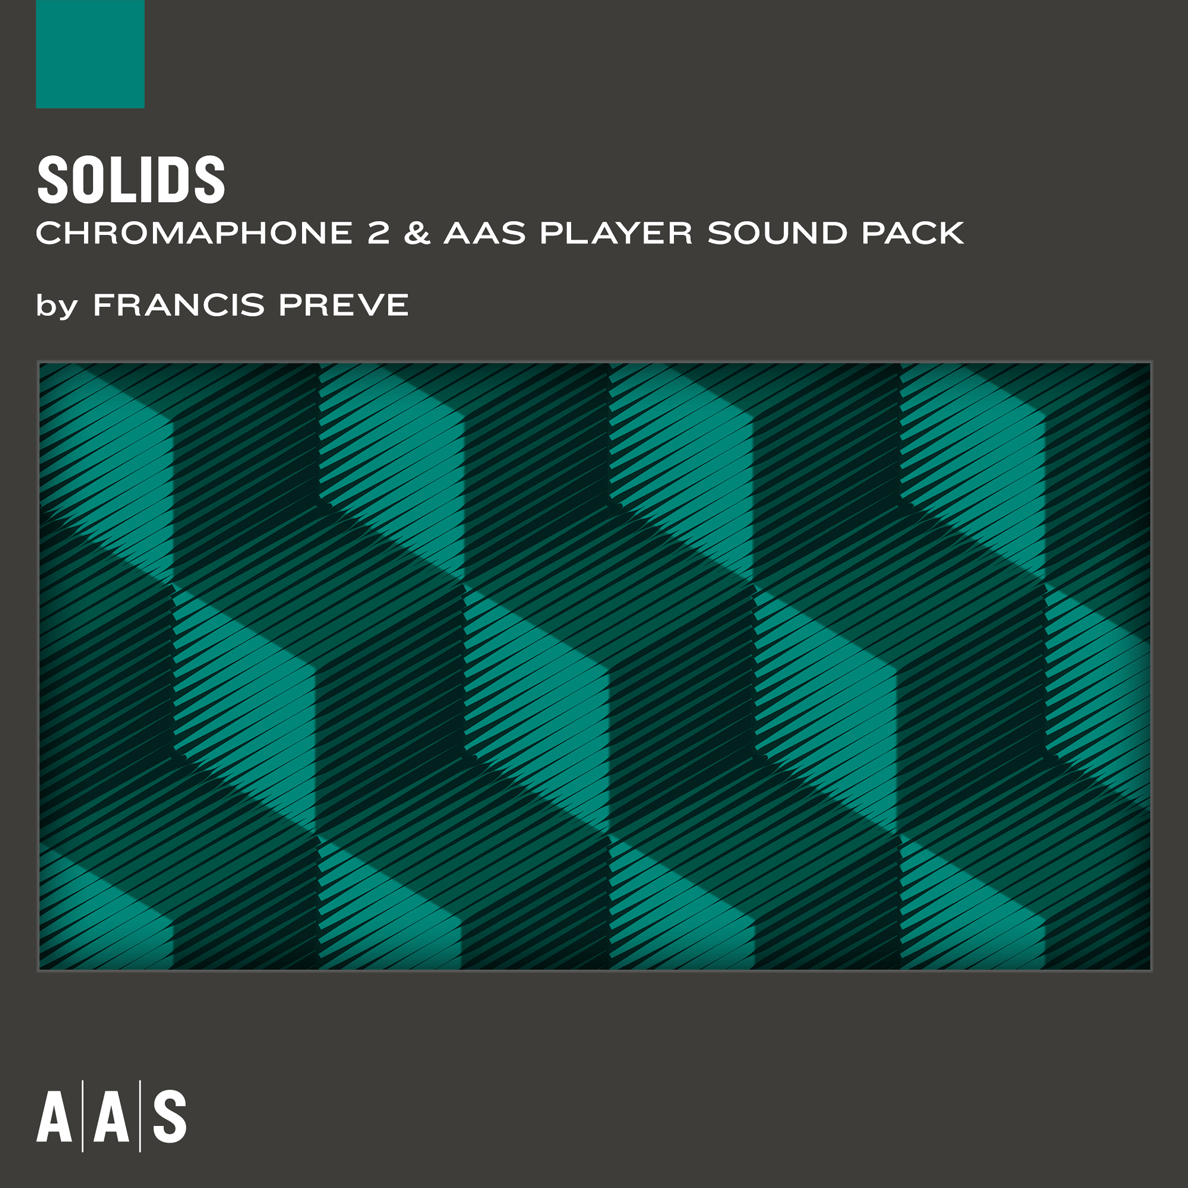 AAS Sound Packs: Solids AAS Sound Packs PluginFox